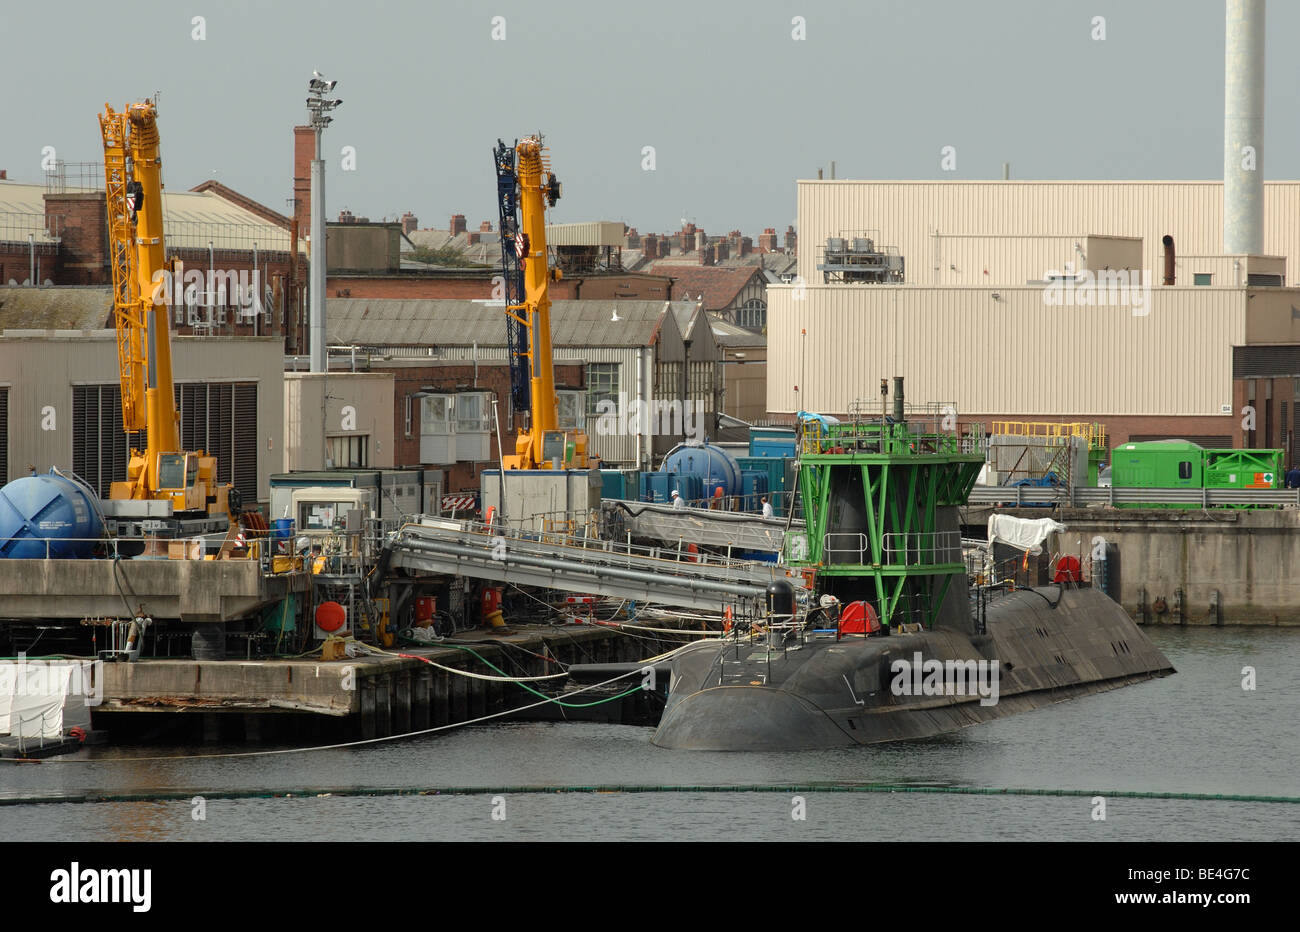 HMS Astute nuclear powered submerine under construction at Barrow in Furness Dock in Cumbria UK 2009 - Stock Image